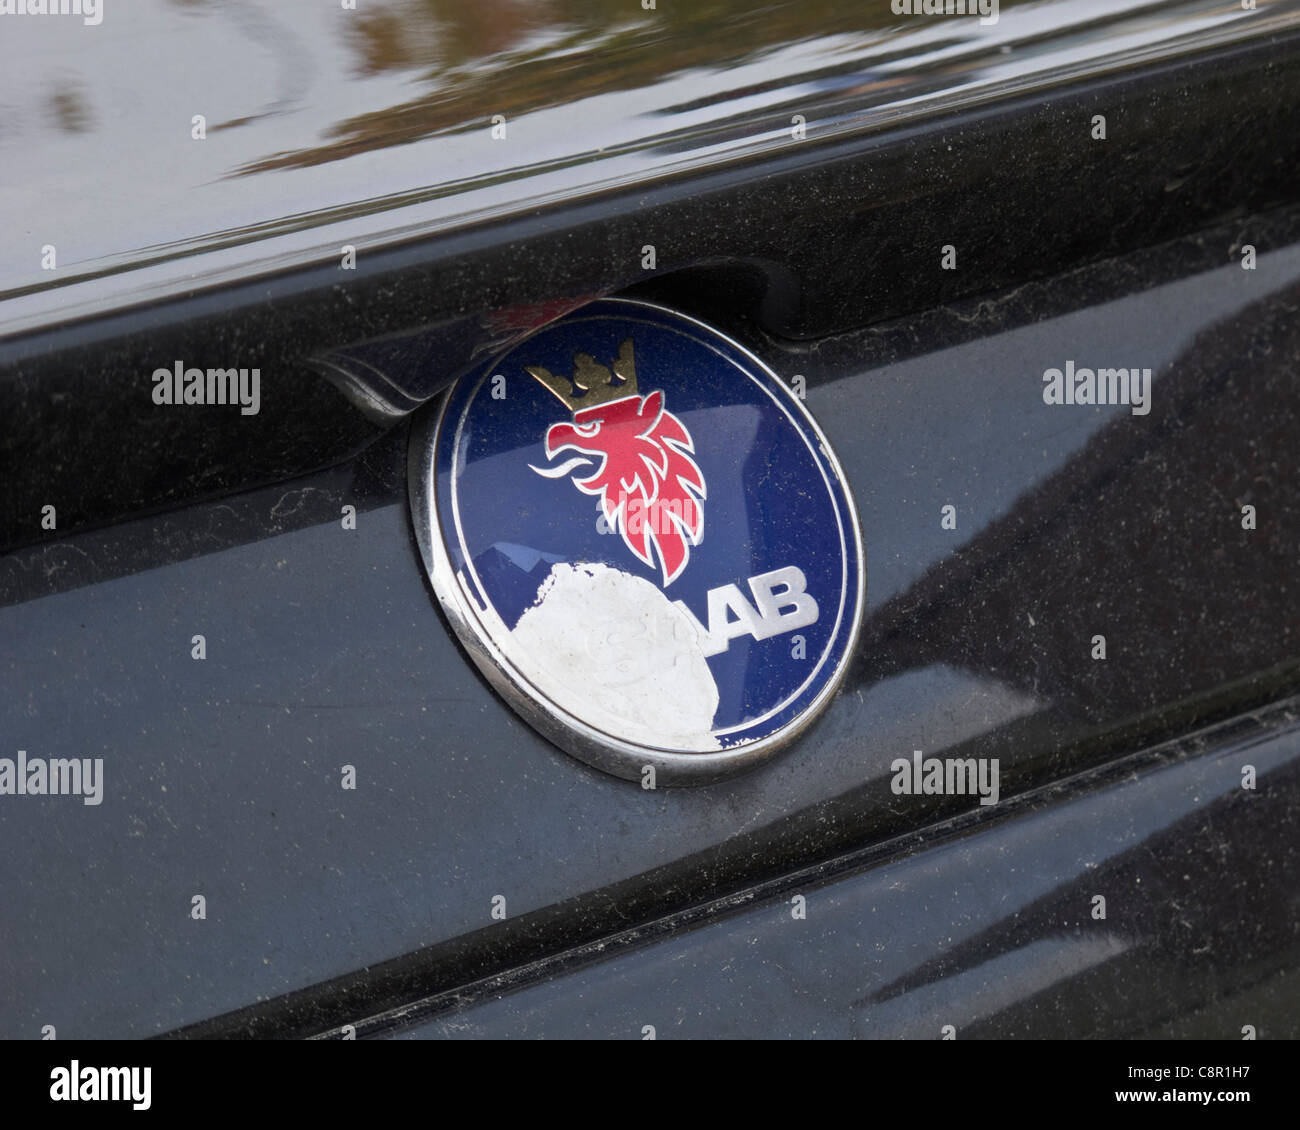 Close-up of damaged SAAB car logo on a black car. FOR EDITORIAL USE ONLY. - Stock Image